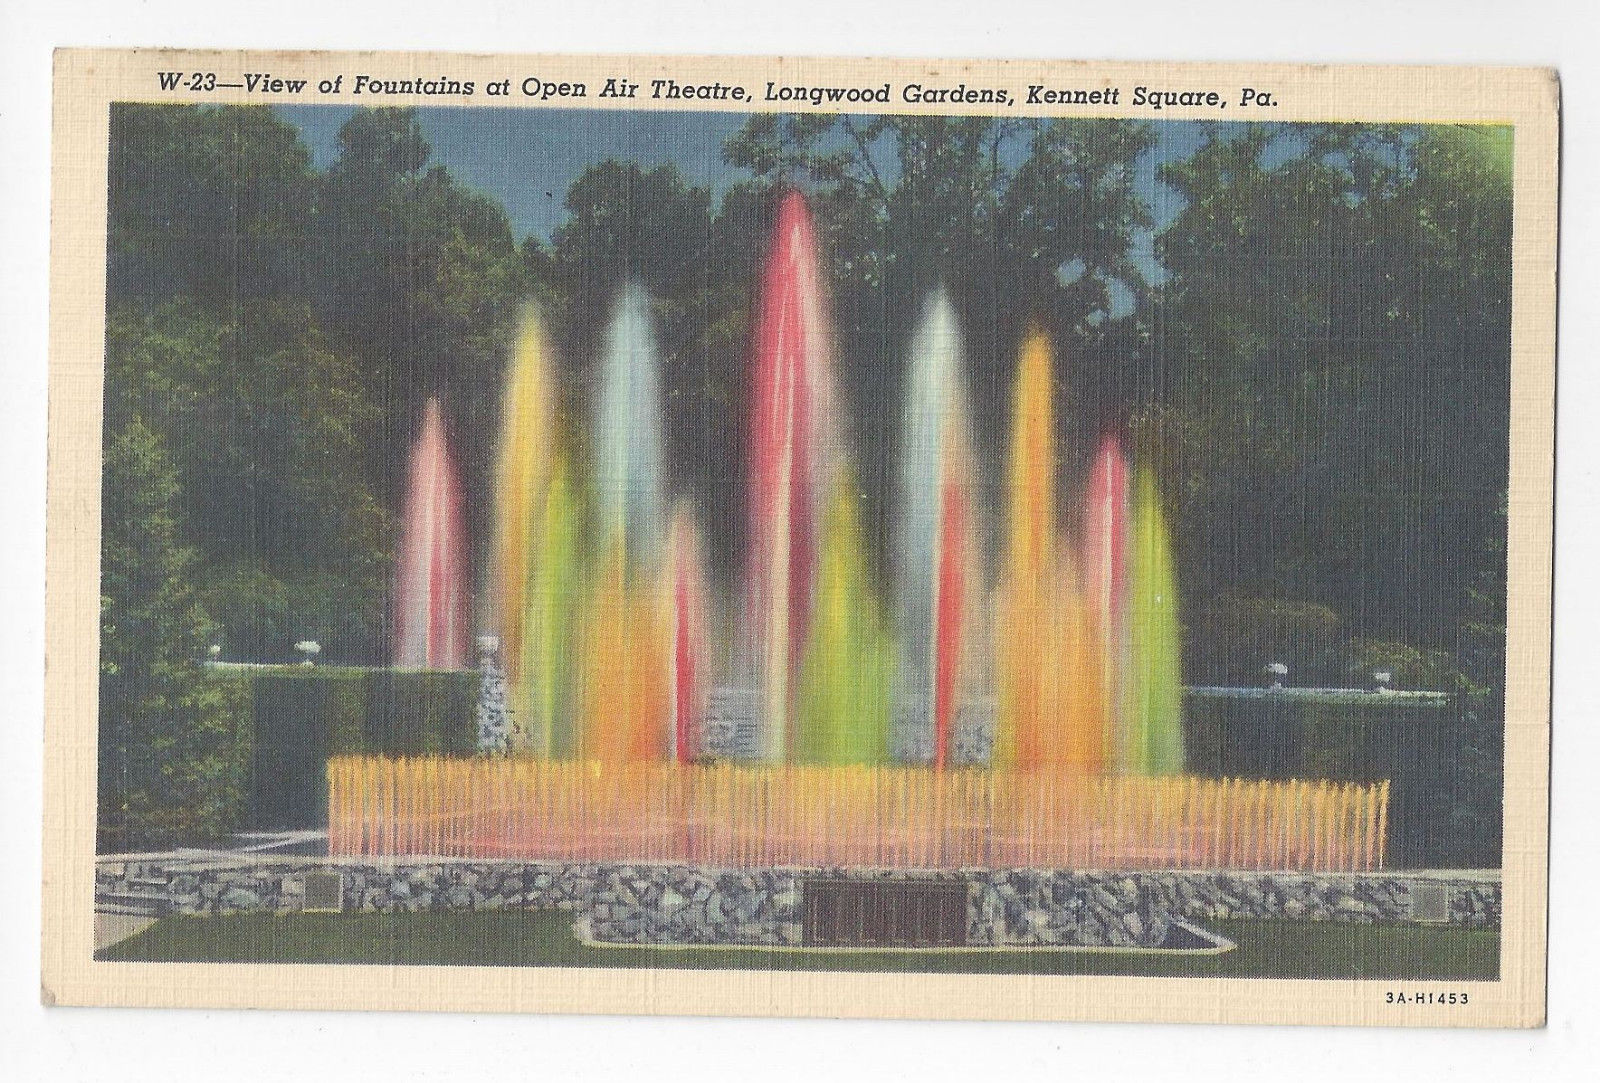 PA Kennett Square Longwood Gardens Fountains Open Air Theatre Vtg 1933 Postcard